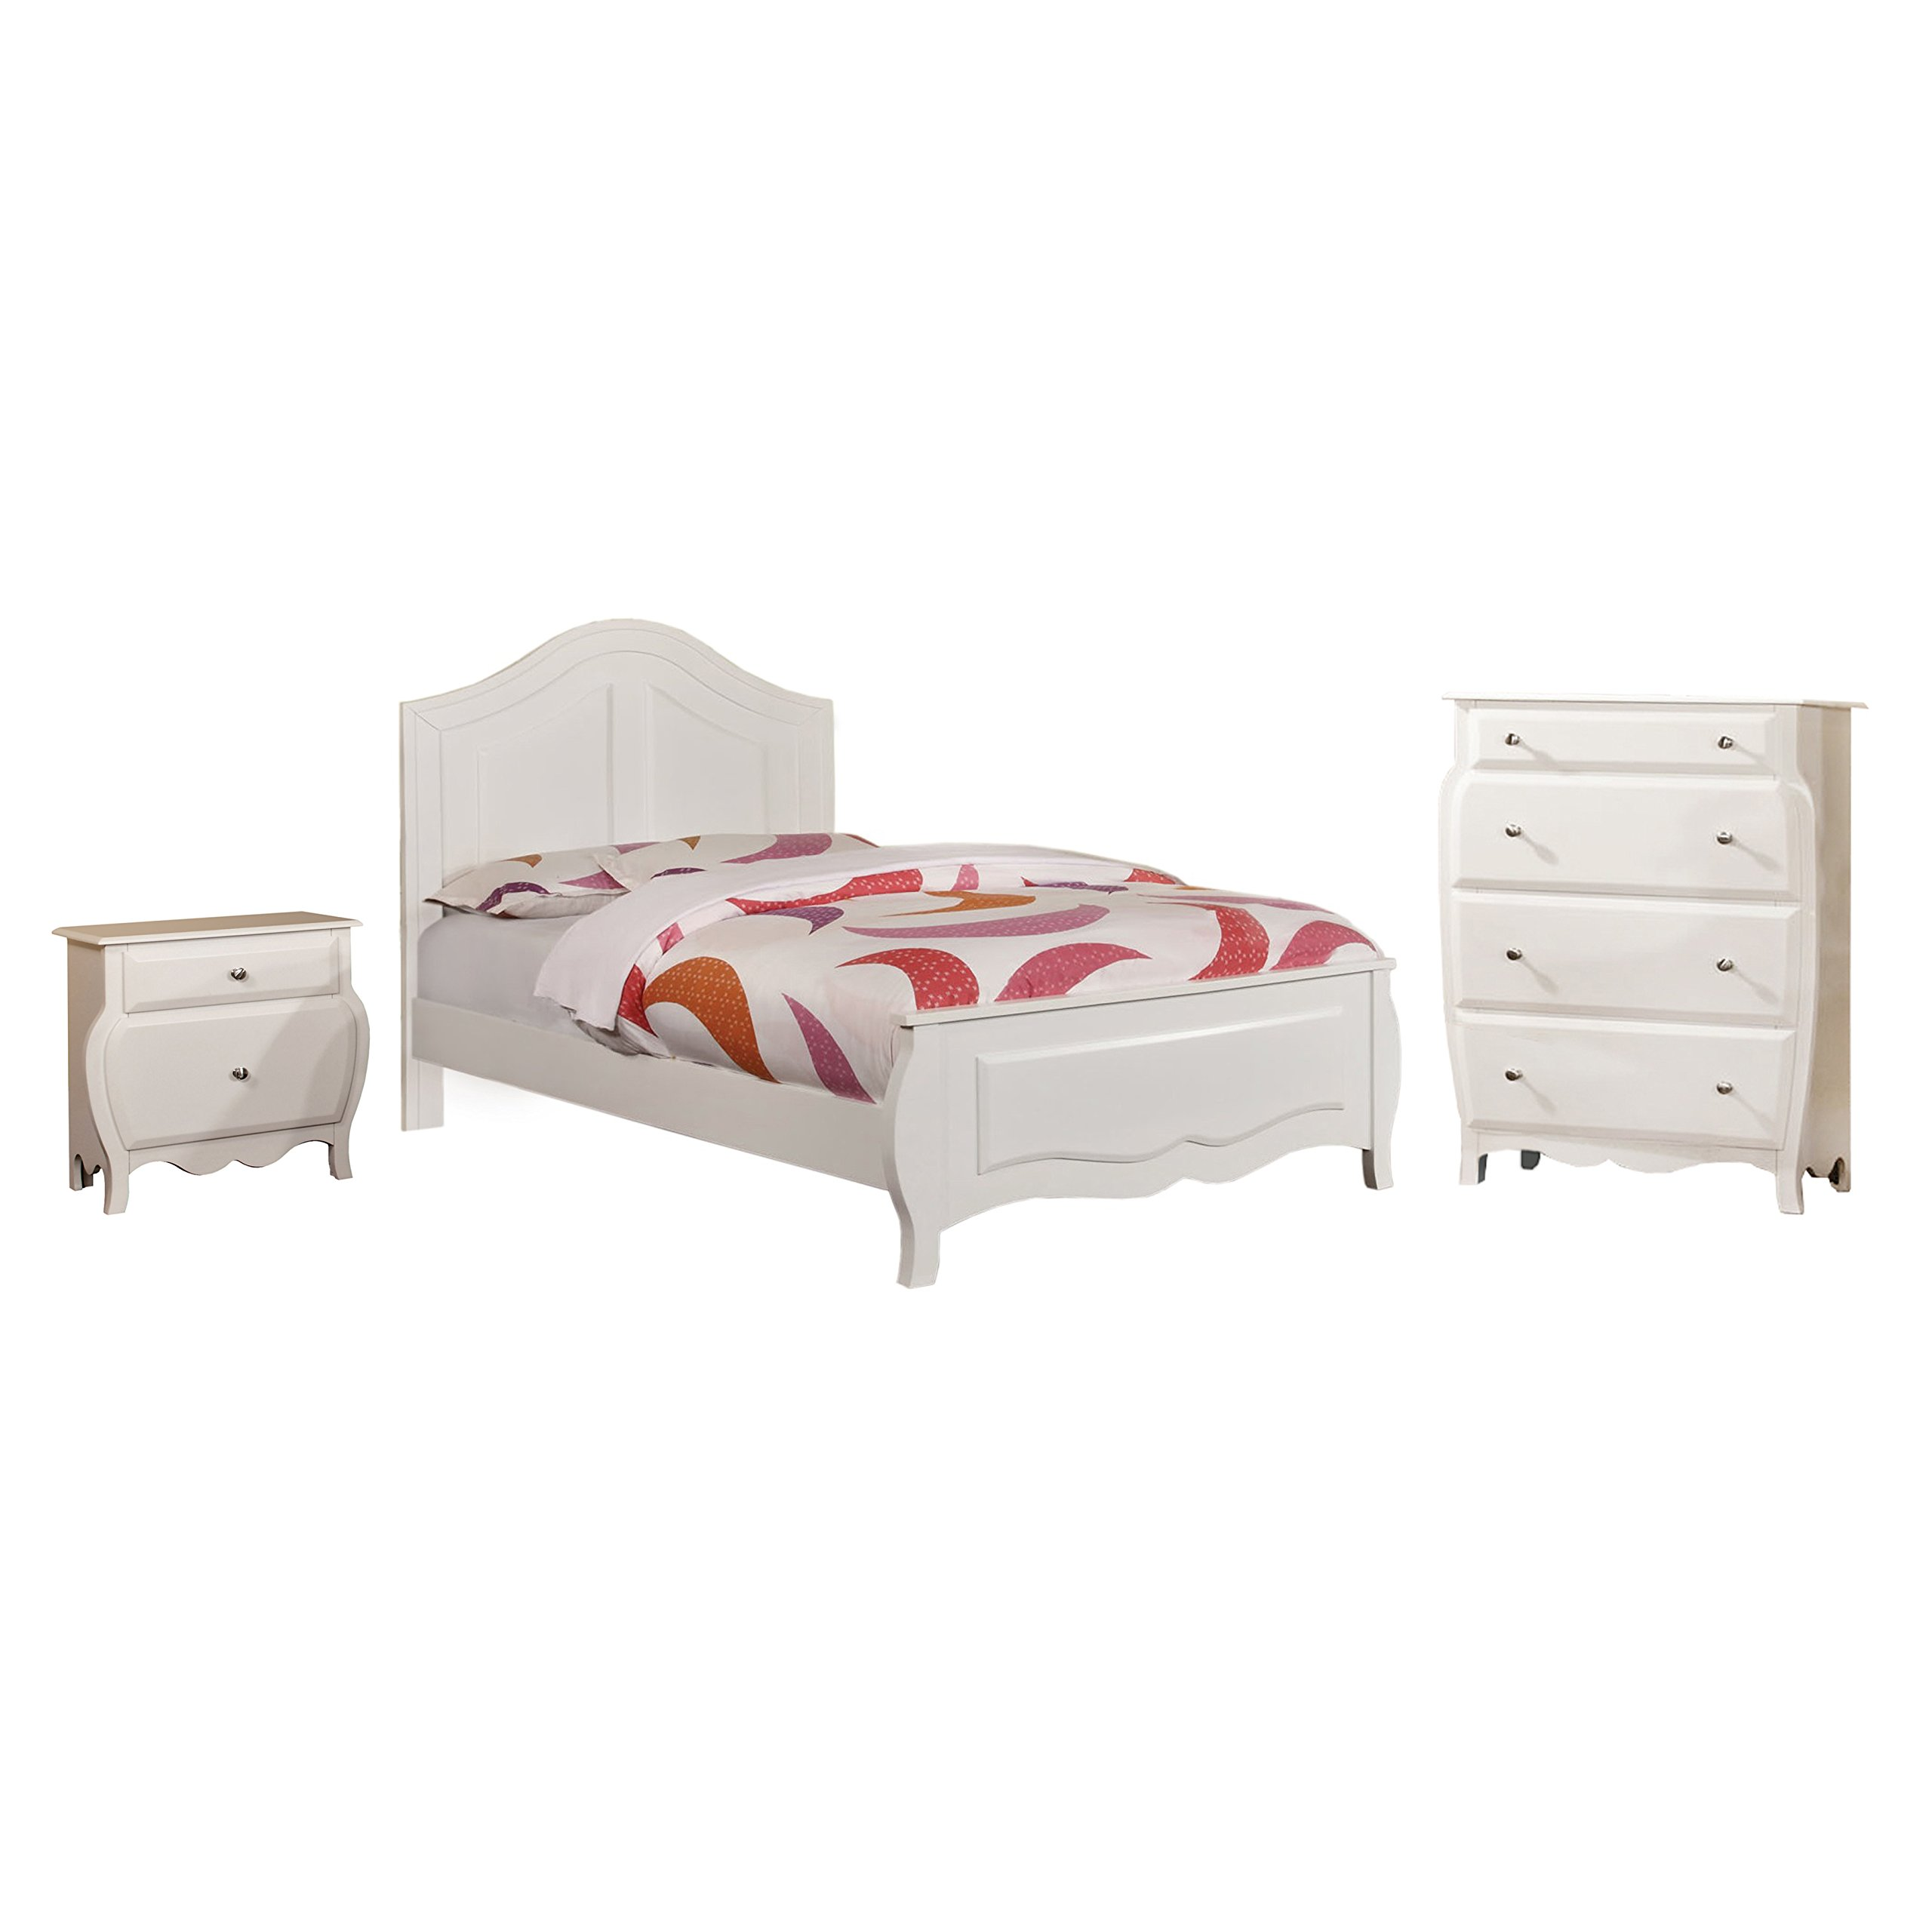 HOMES: Inside + Out 3 Piece ioHOMES Lionel Youth Bedroom Set, Twin, White